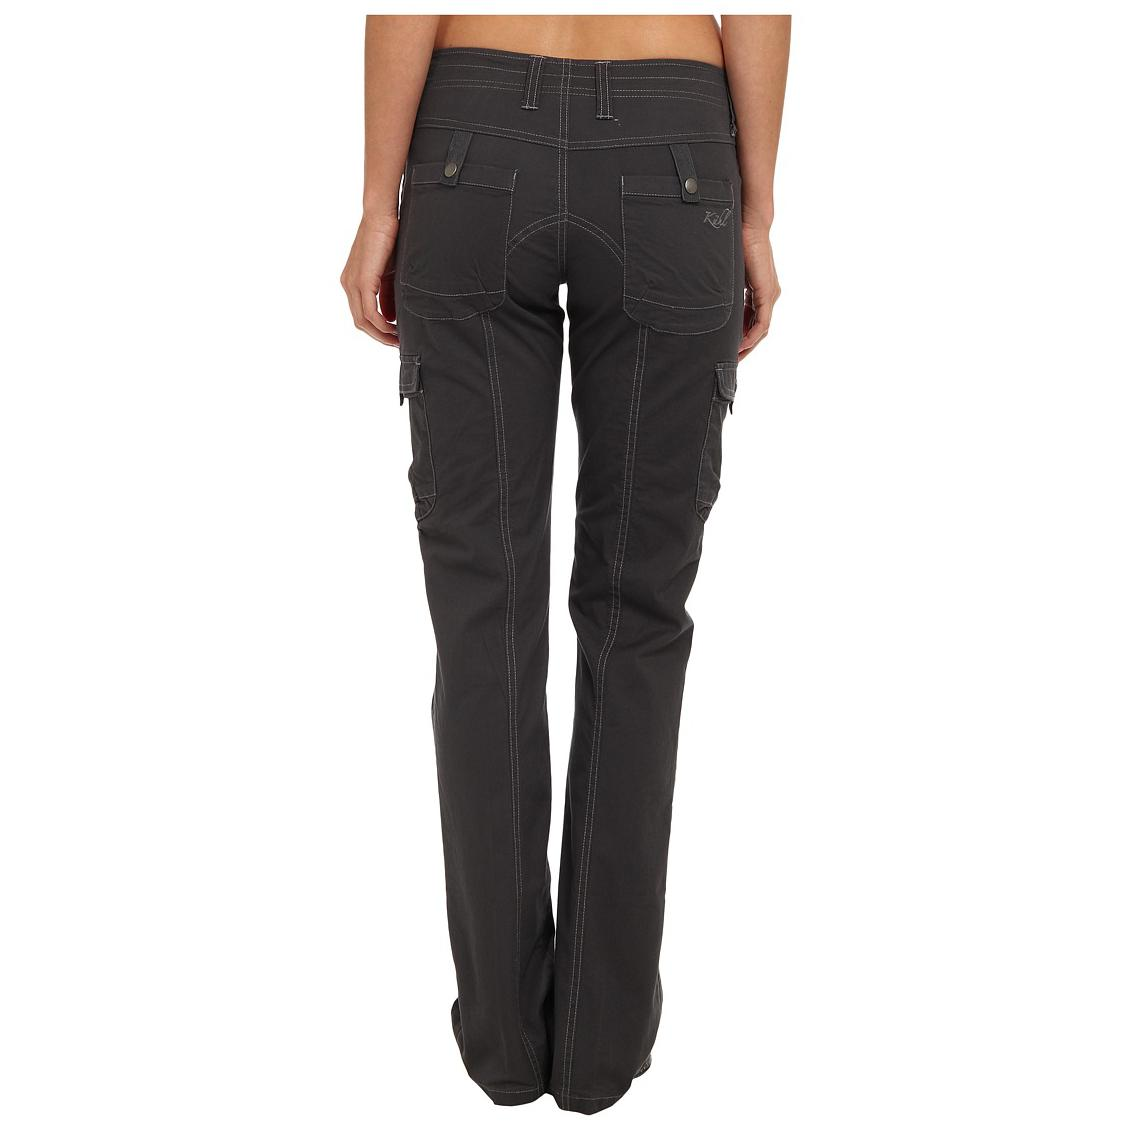 kuhl womens pants photo - 2